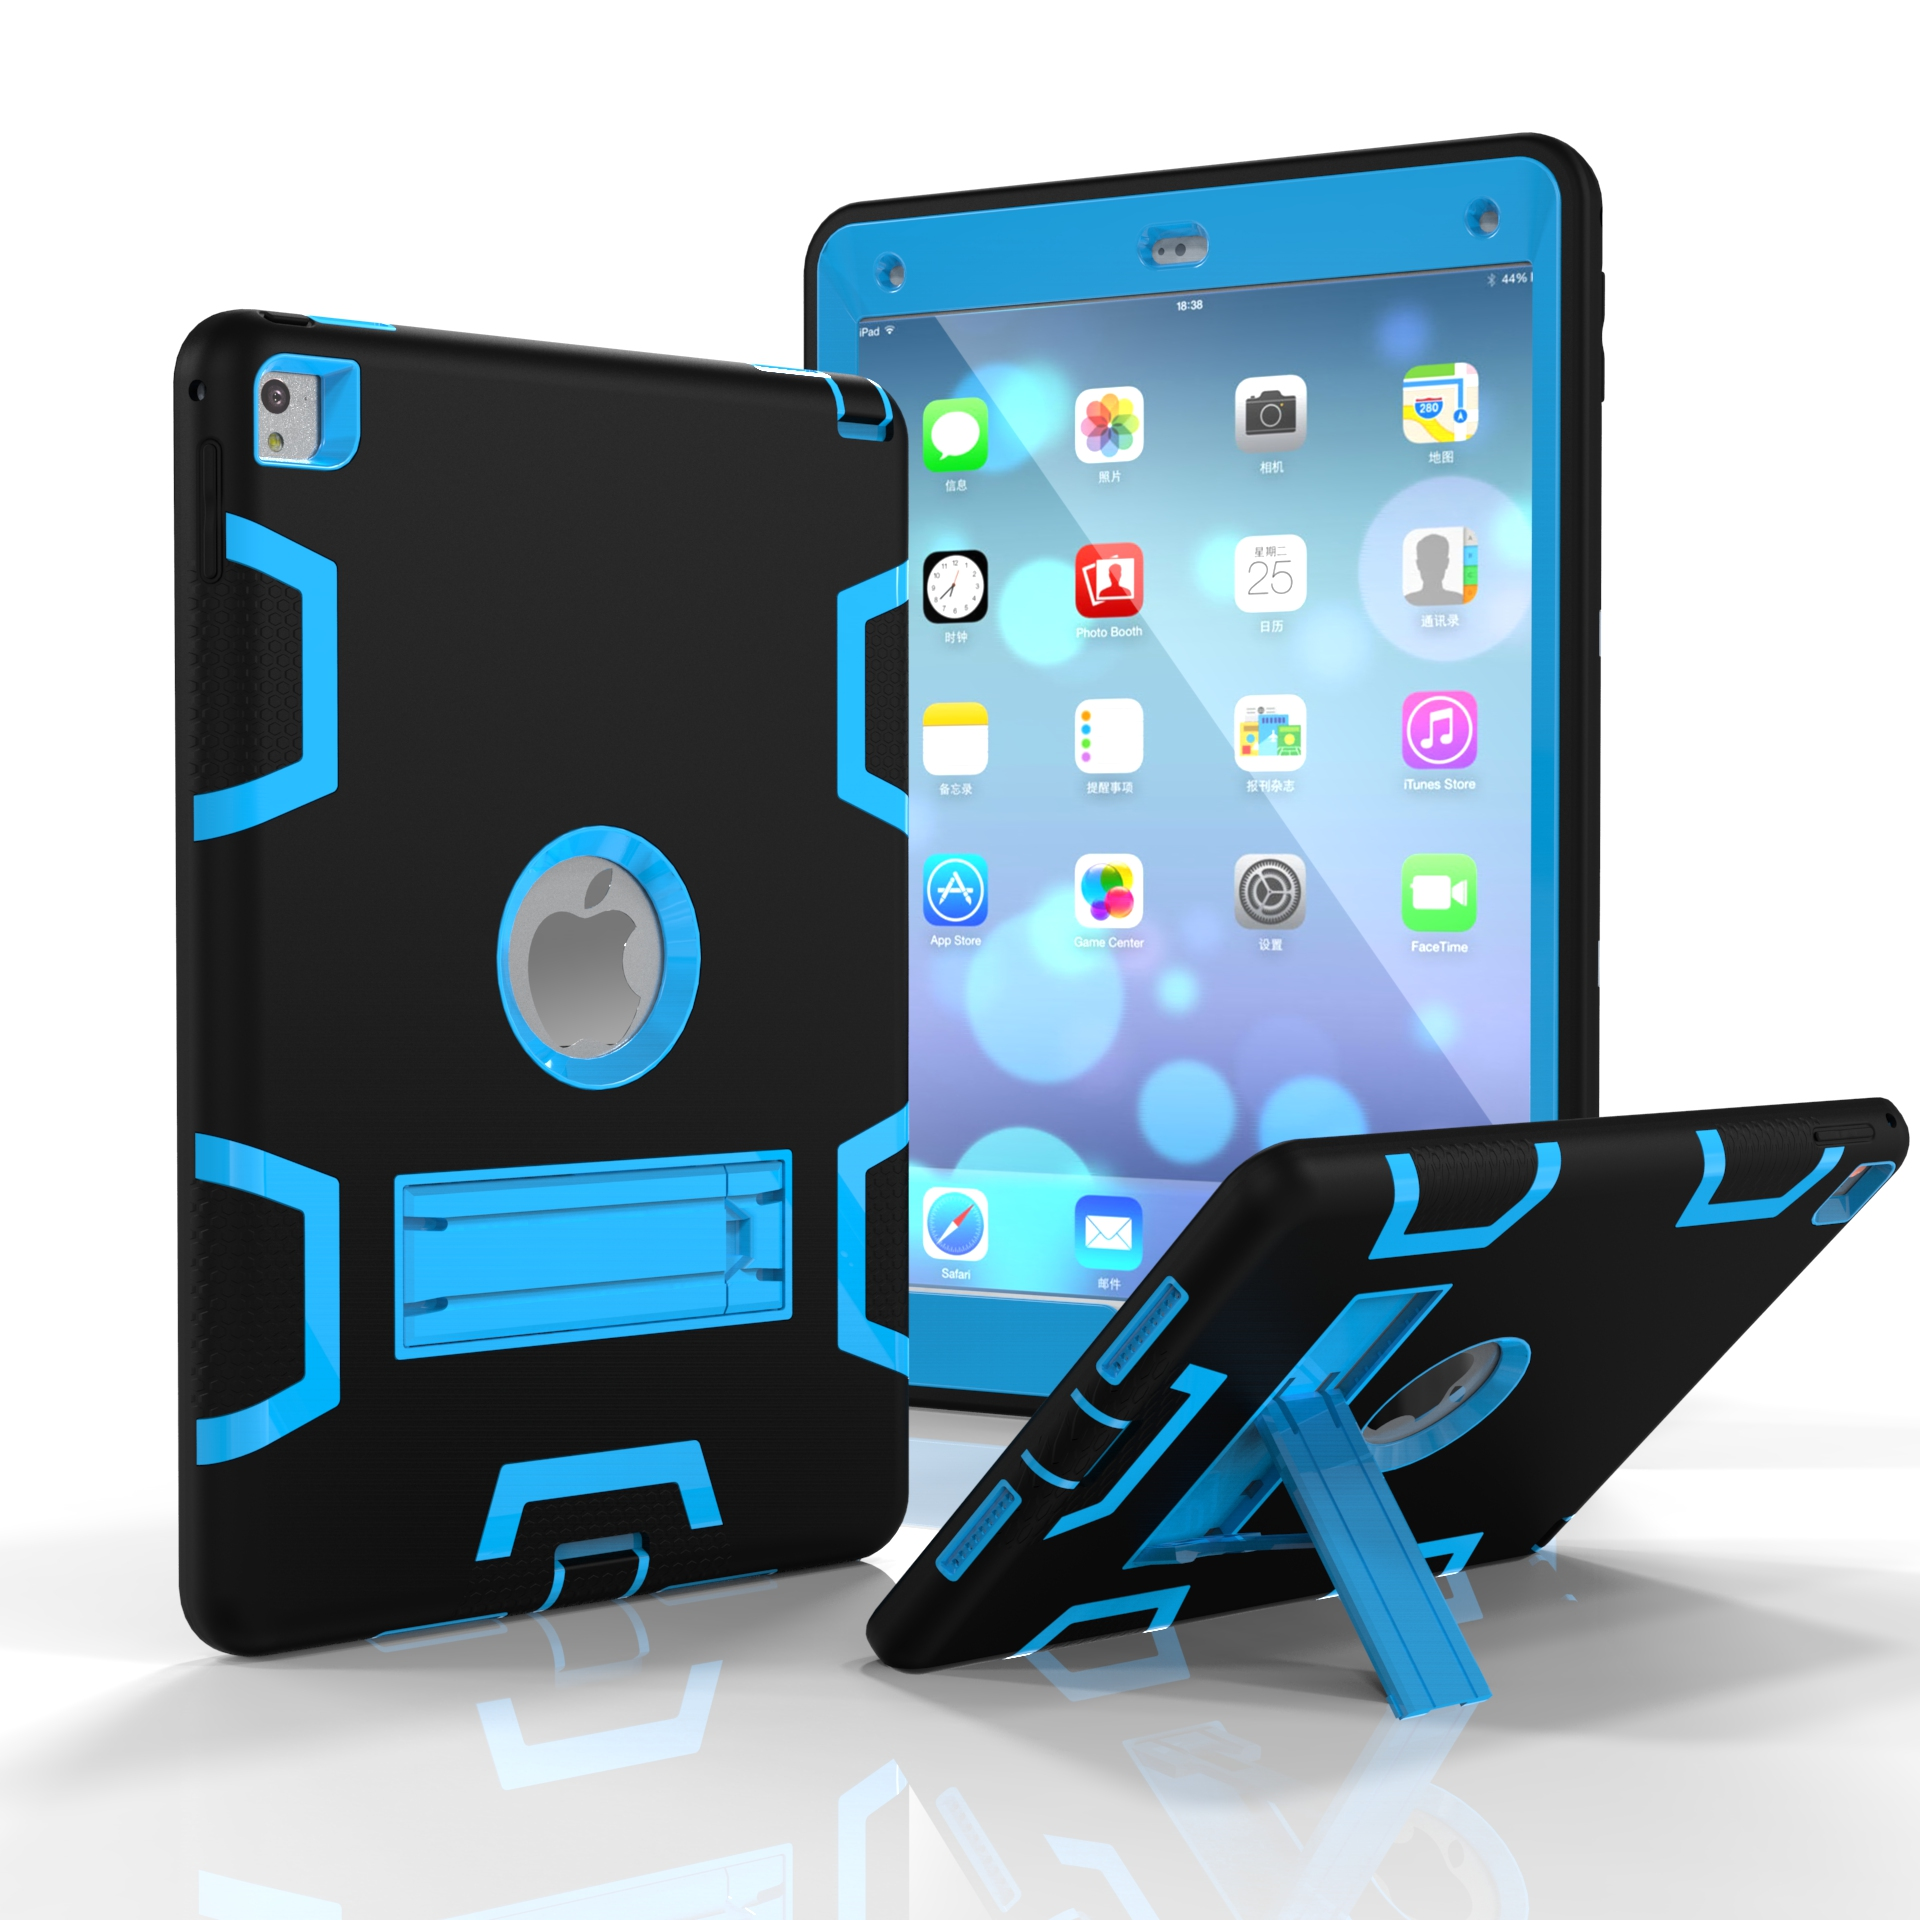 For iPad air2/iPad 6/iPad pro 9.7 2016 PC+ Silicone Hit Color Armor Case Tri-proof Shockproof Dustproof Anti-fall Protective Cover  Black + blue